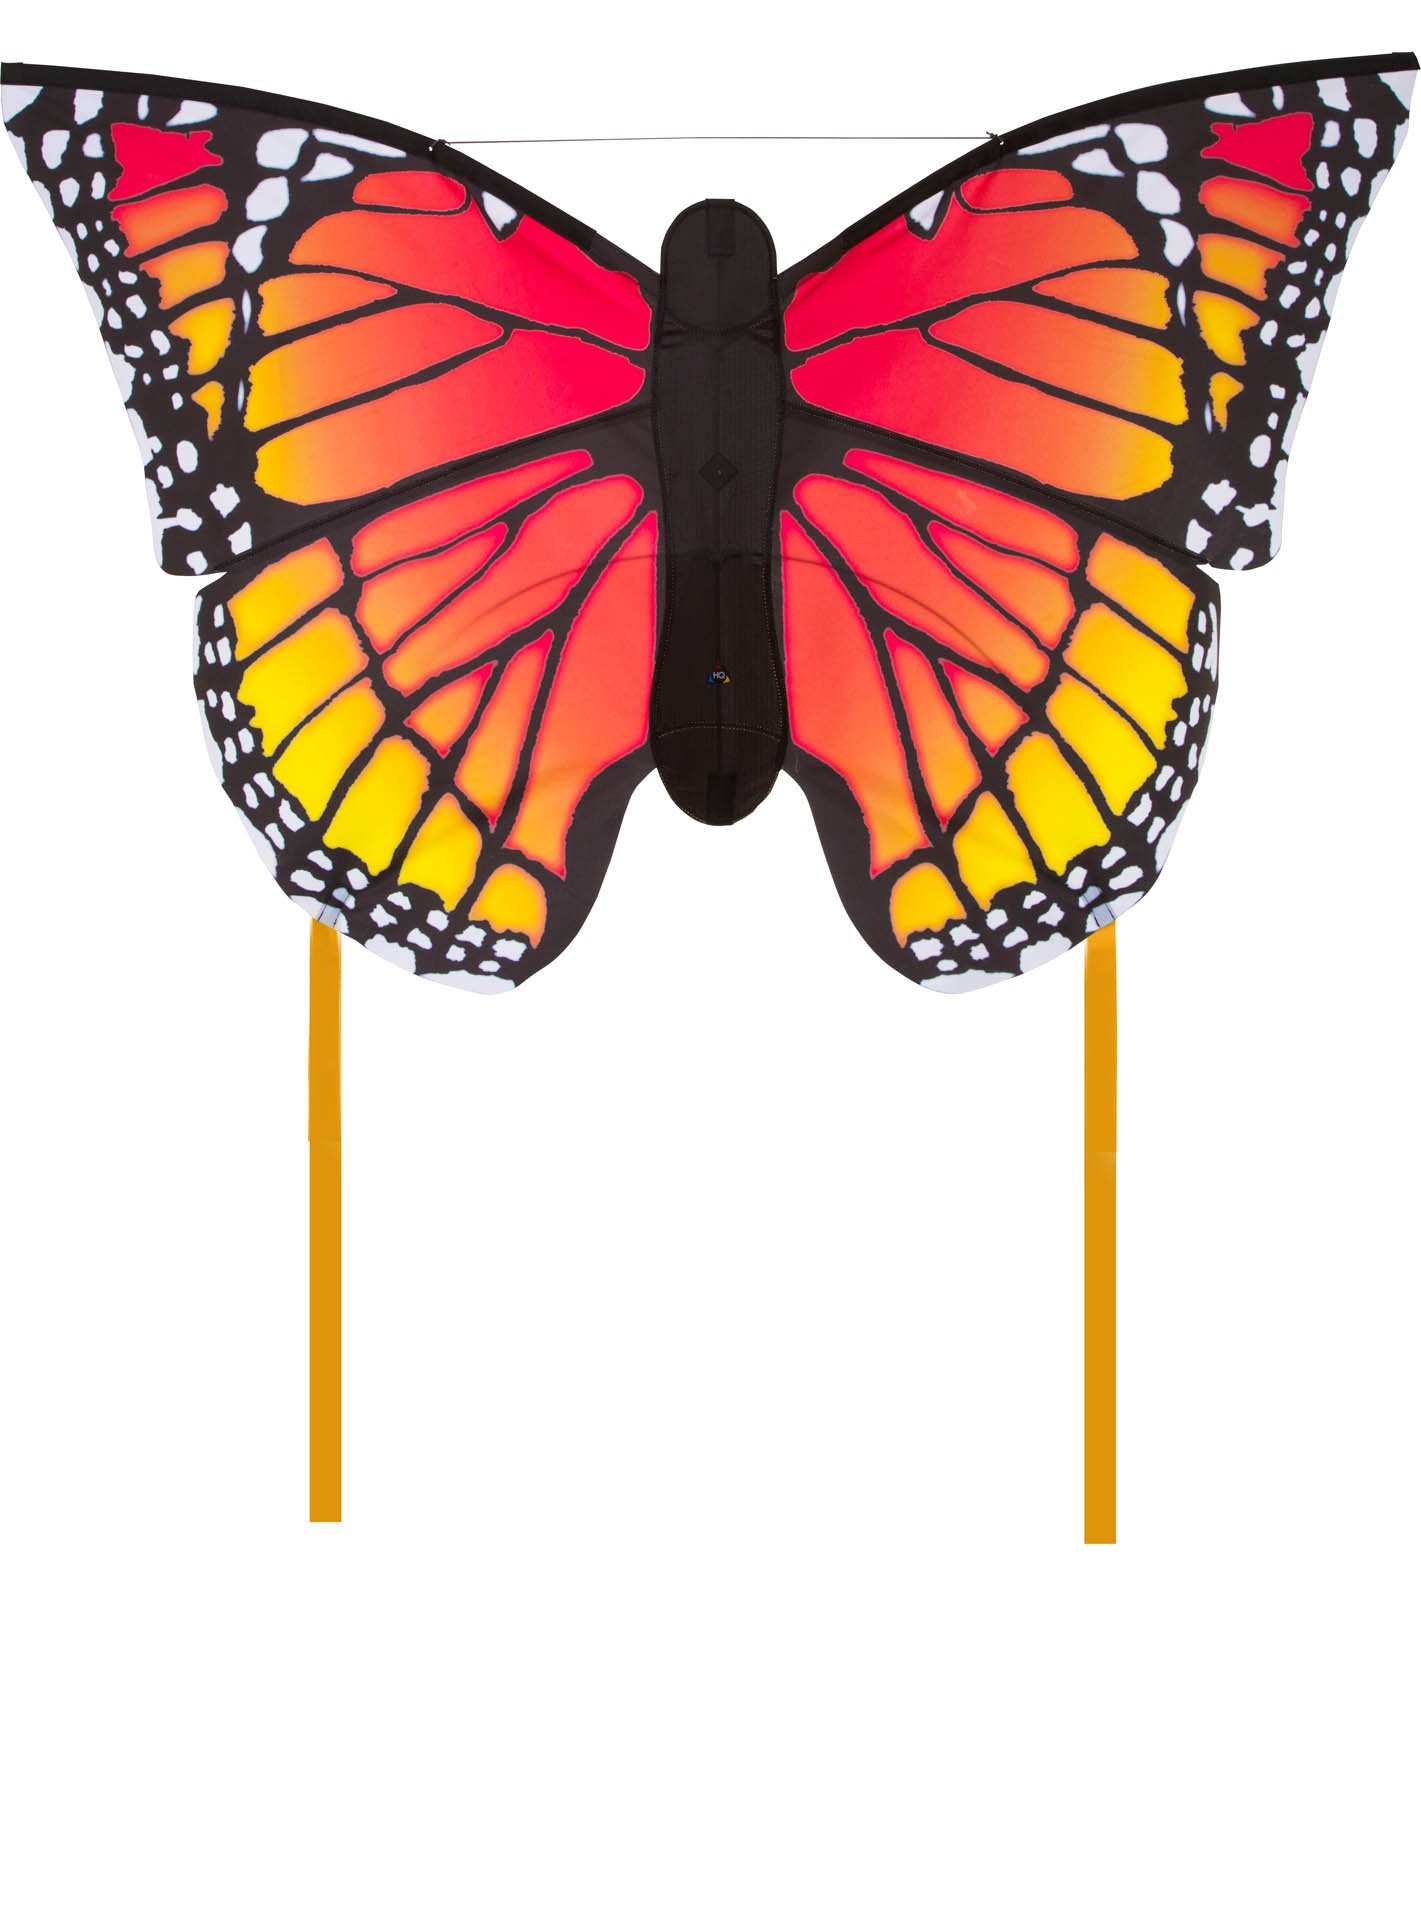 HQ Kites Monarch L Butterfly Kite   50 Inch Single - Line Kite with Tail - Active Outdoor Fun for Ages 5 and Up by HQ Kites and Design